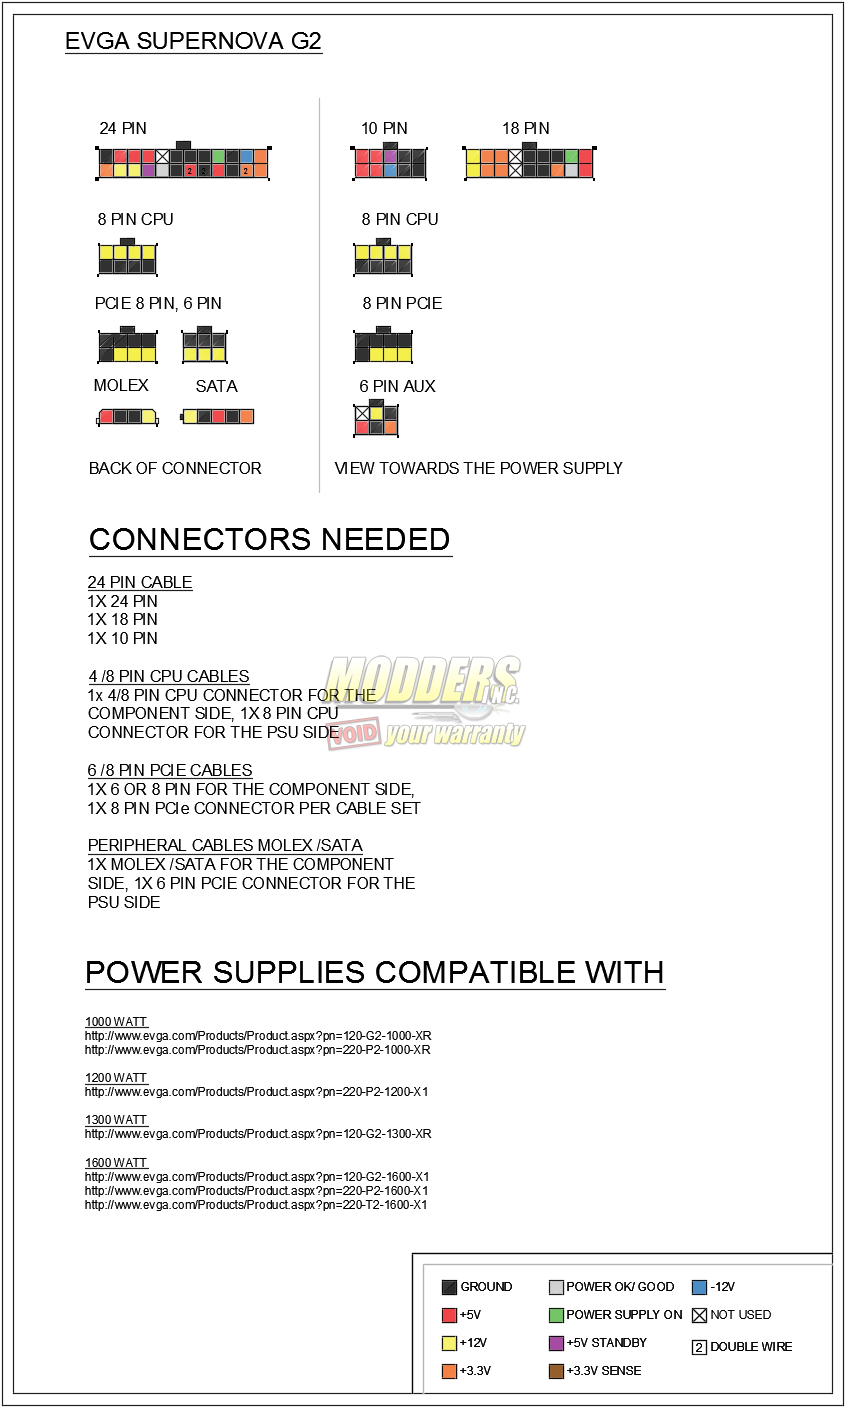 evga supernova G2 power supply pinout